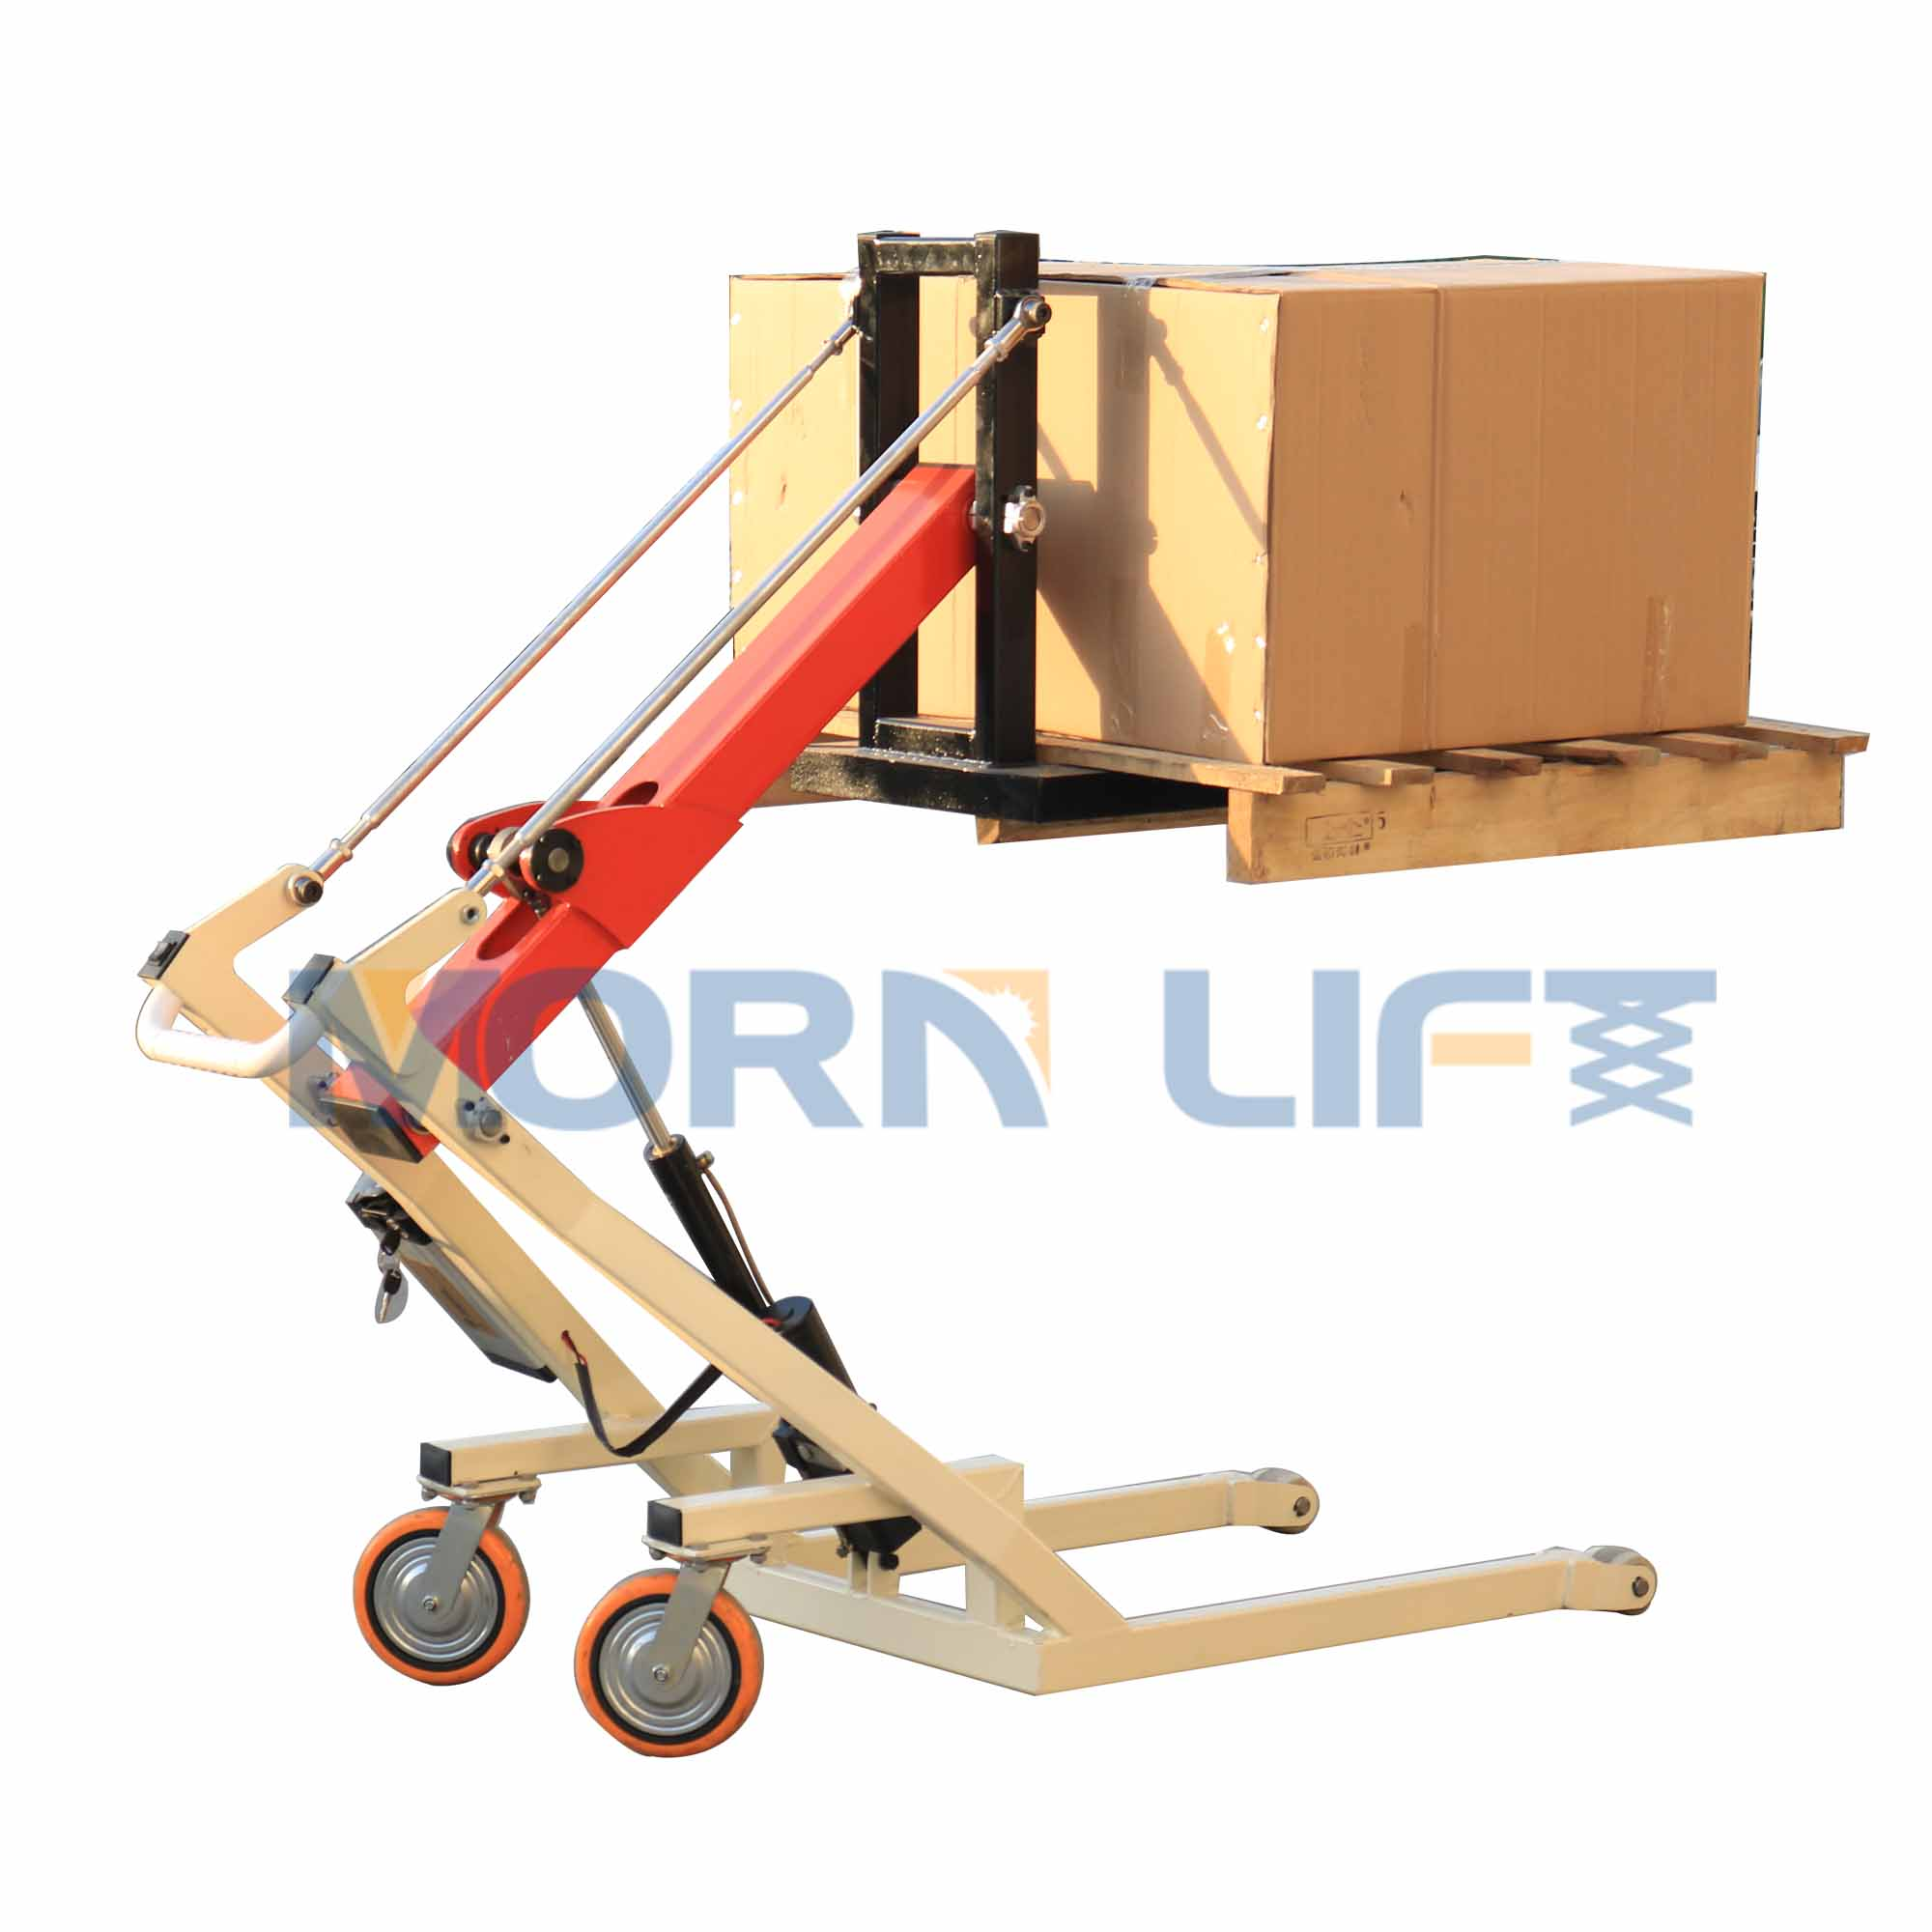 Morn Forklift Is Designed To Lift Standard Pallet With 500kg Load Capacity And 1500mm Lifting Height.